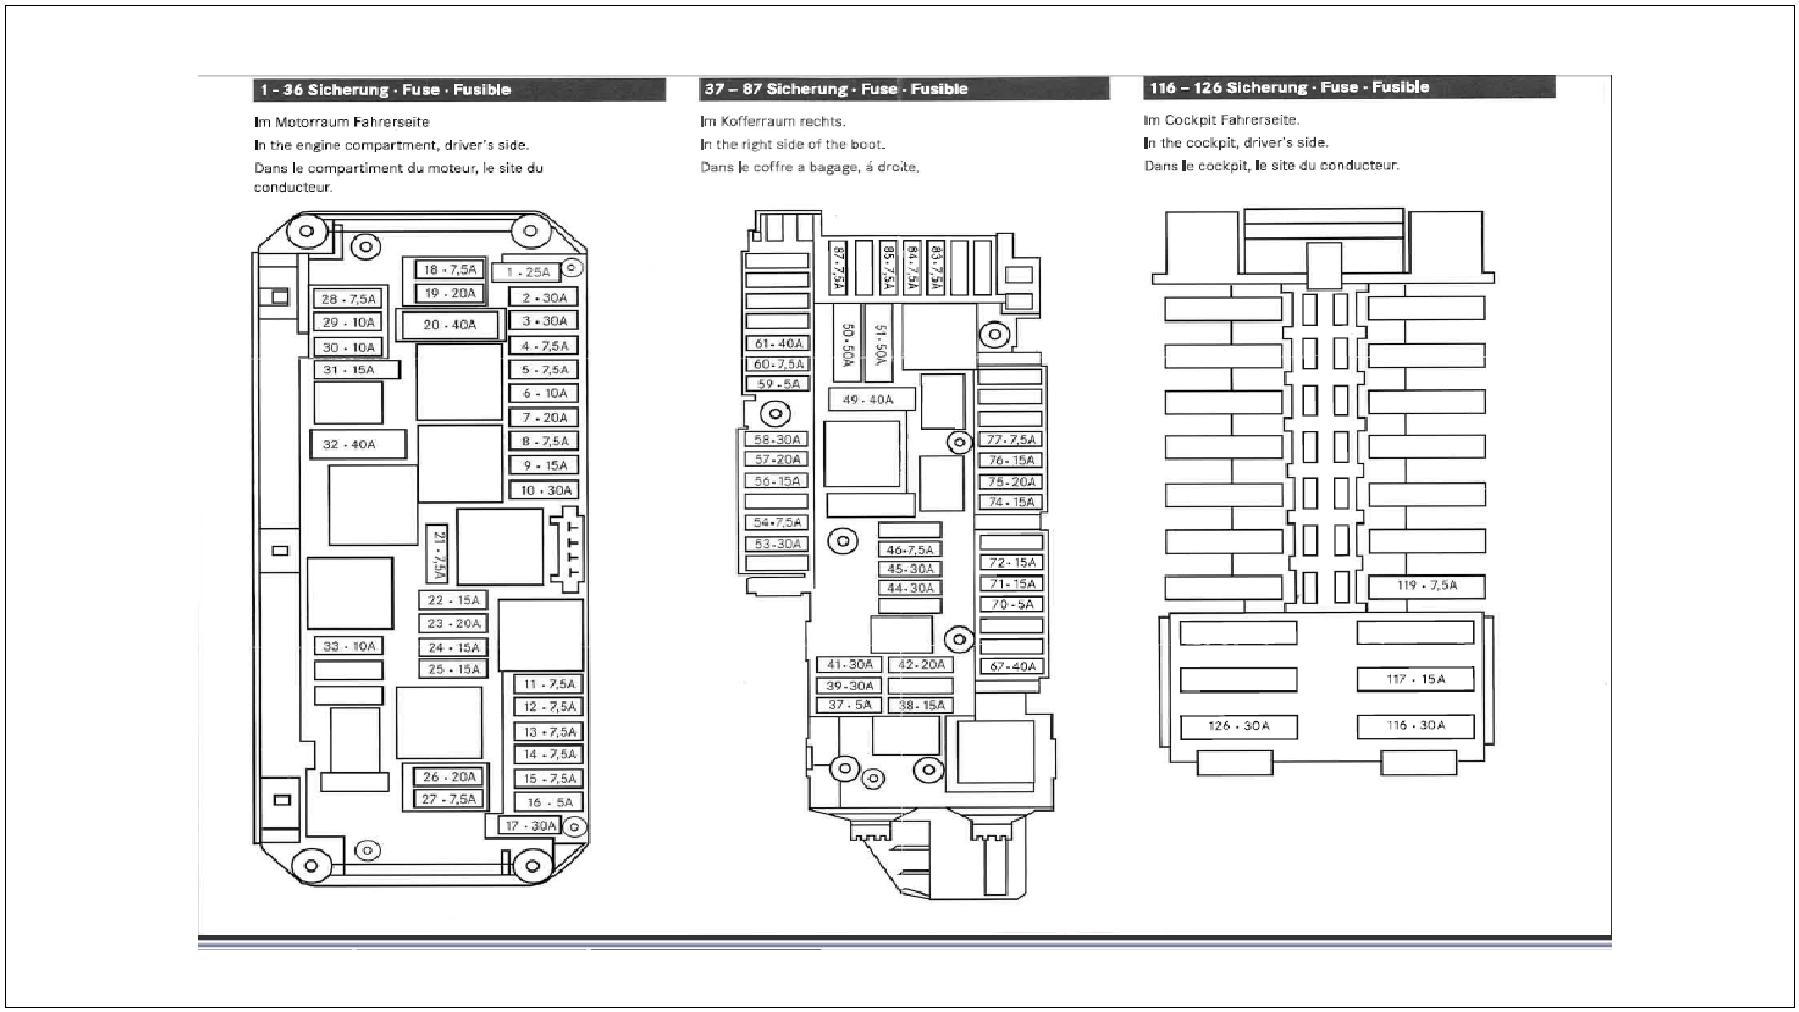 mercedes benz c class w204 fuse diagrams and commonly 2009 mercedes benz  c300 fuse chart 2009 mercedes benz c300 fuse box